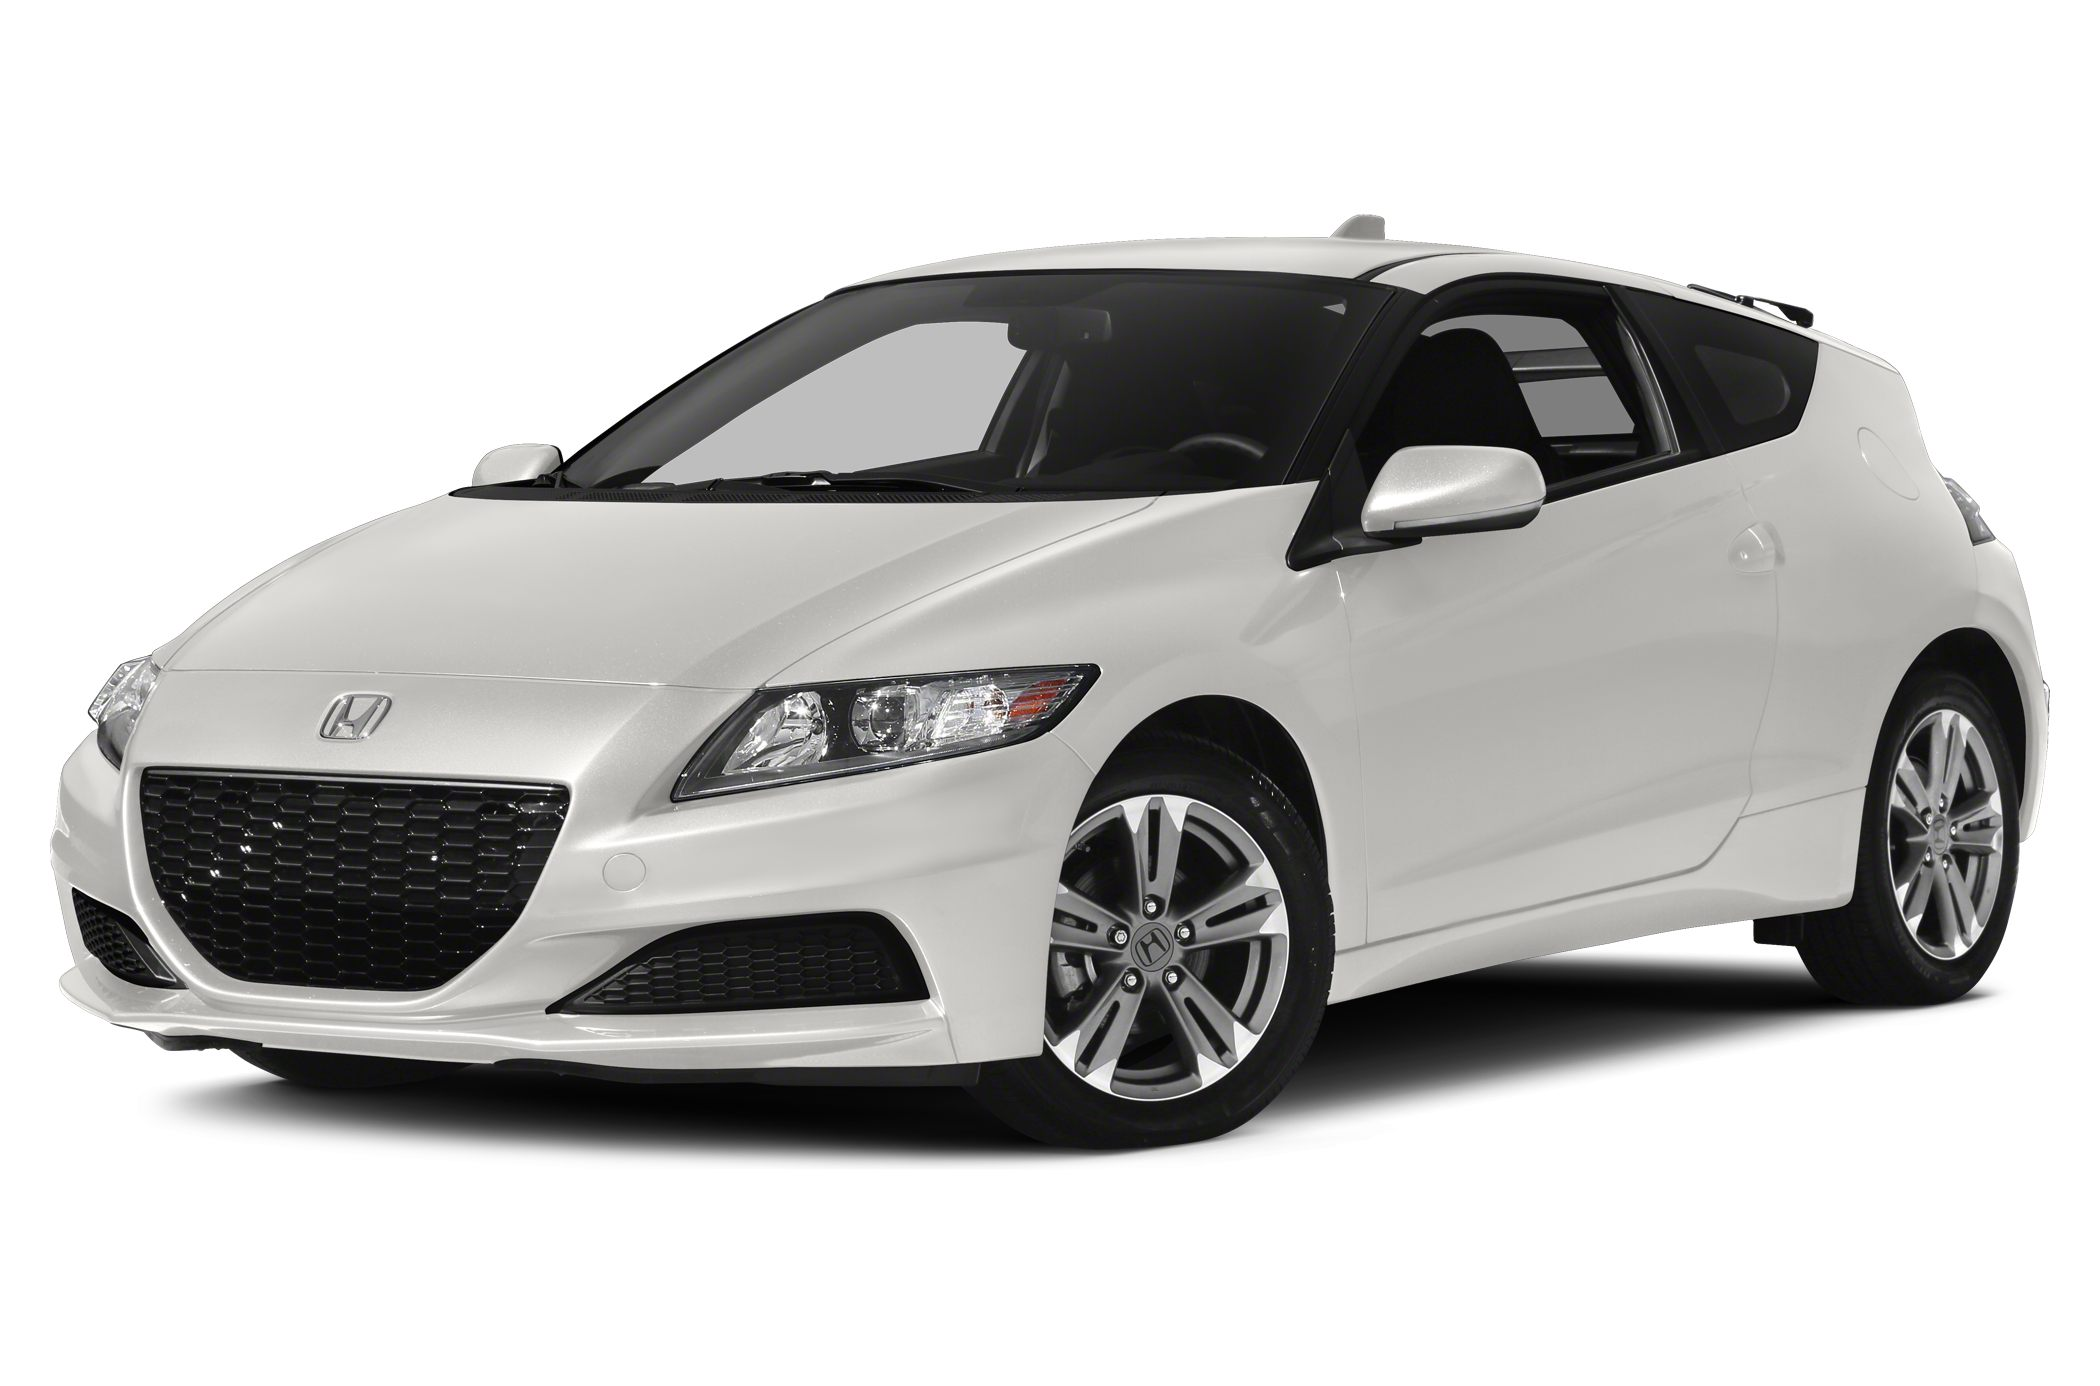 2015 Honda CR-Z